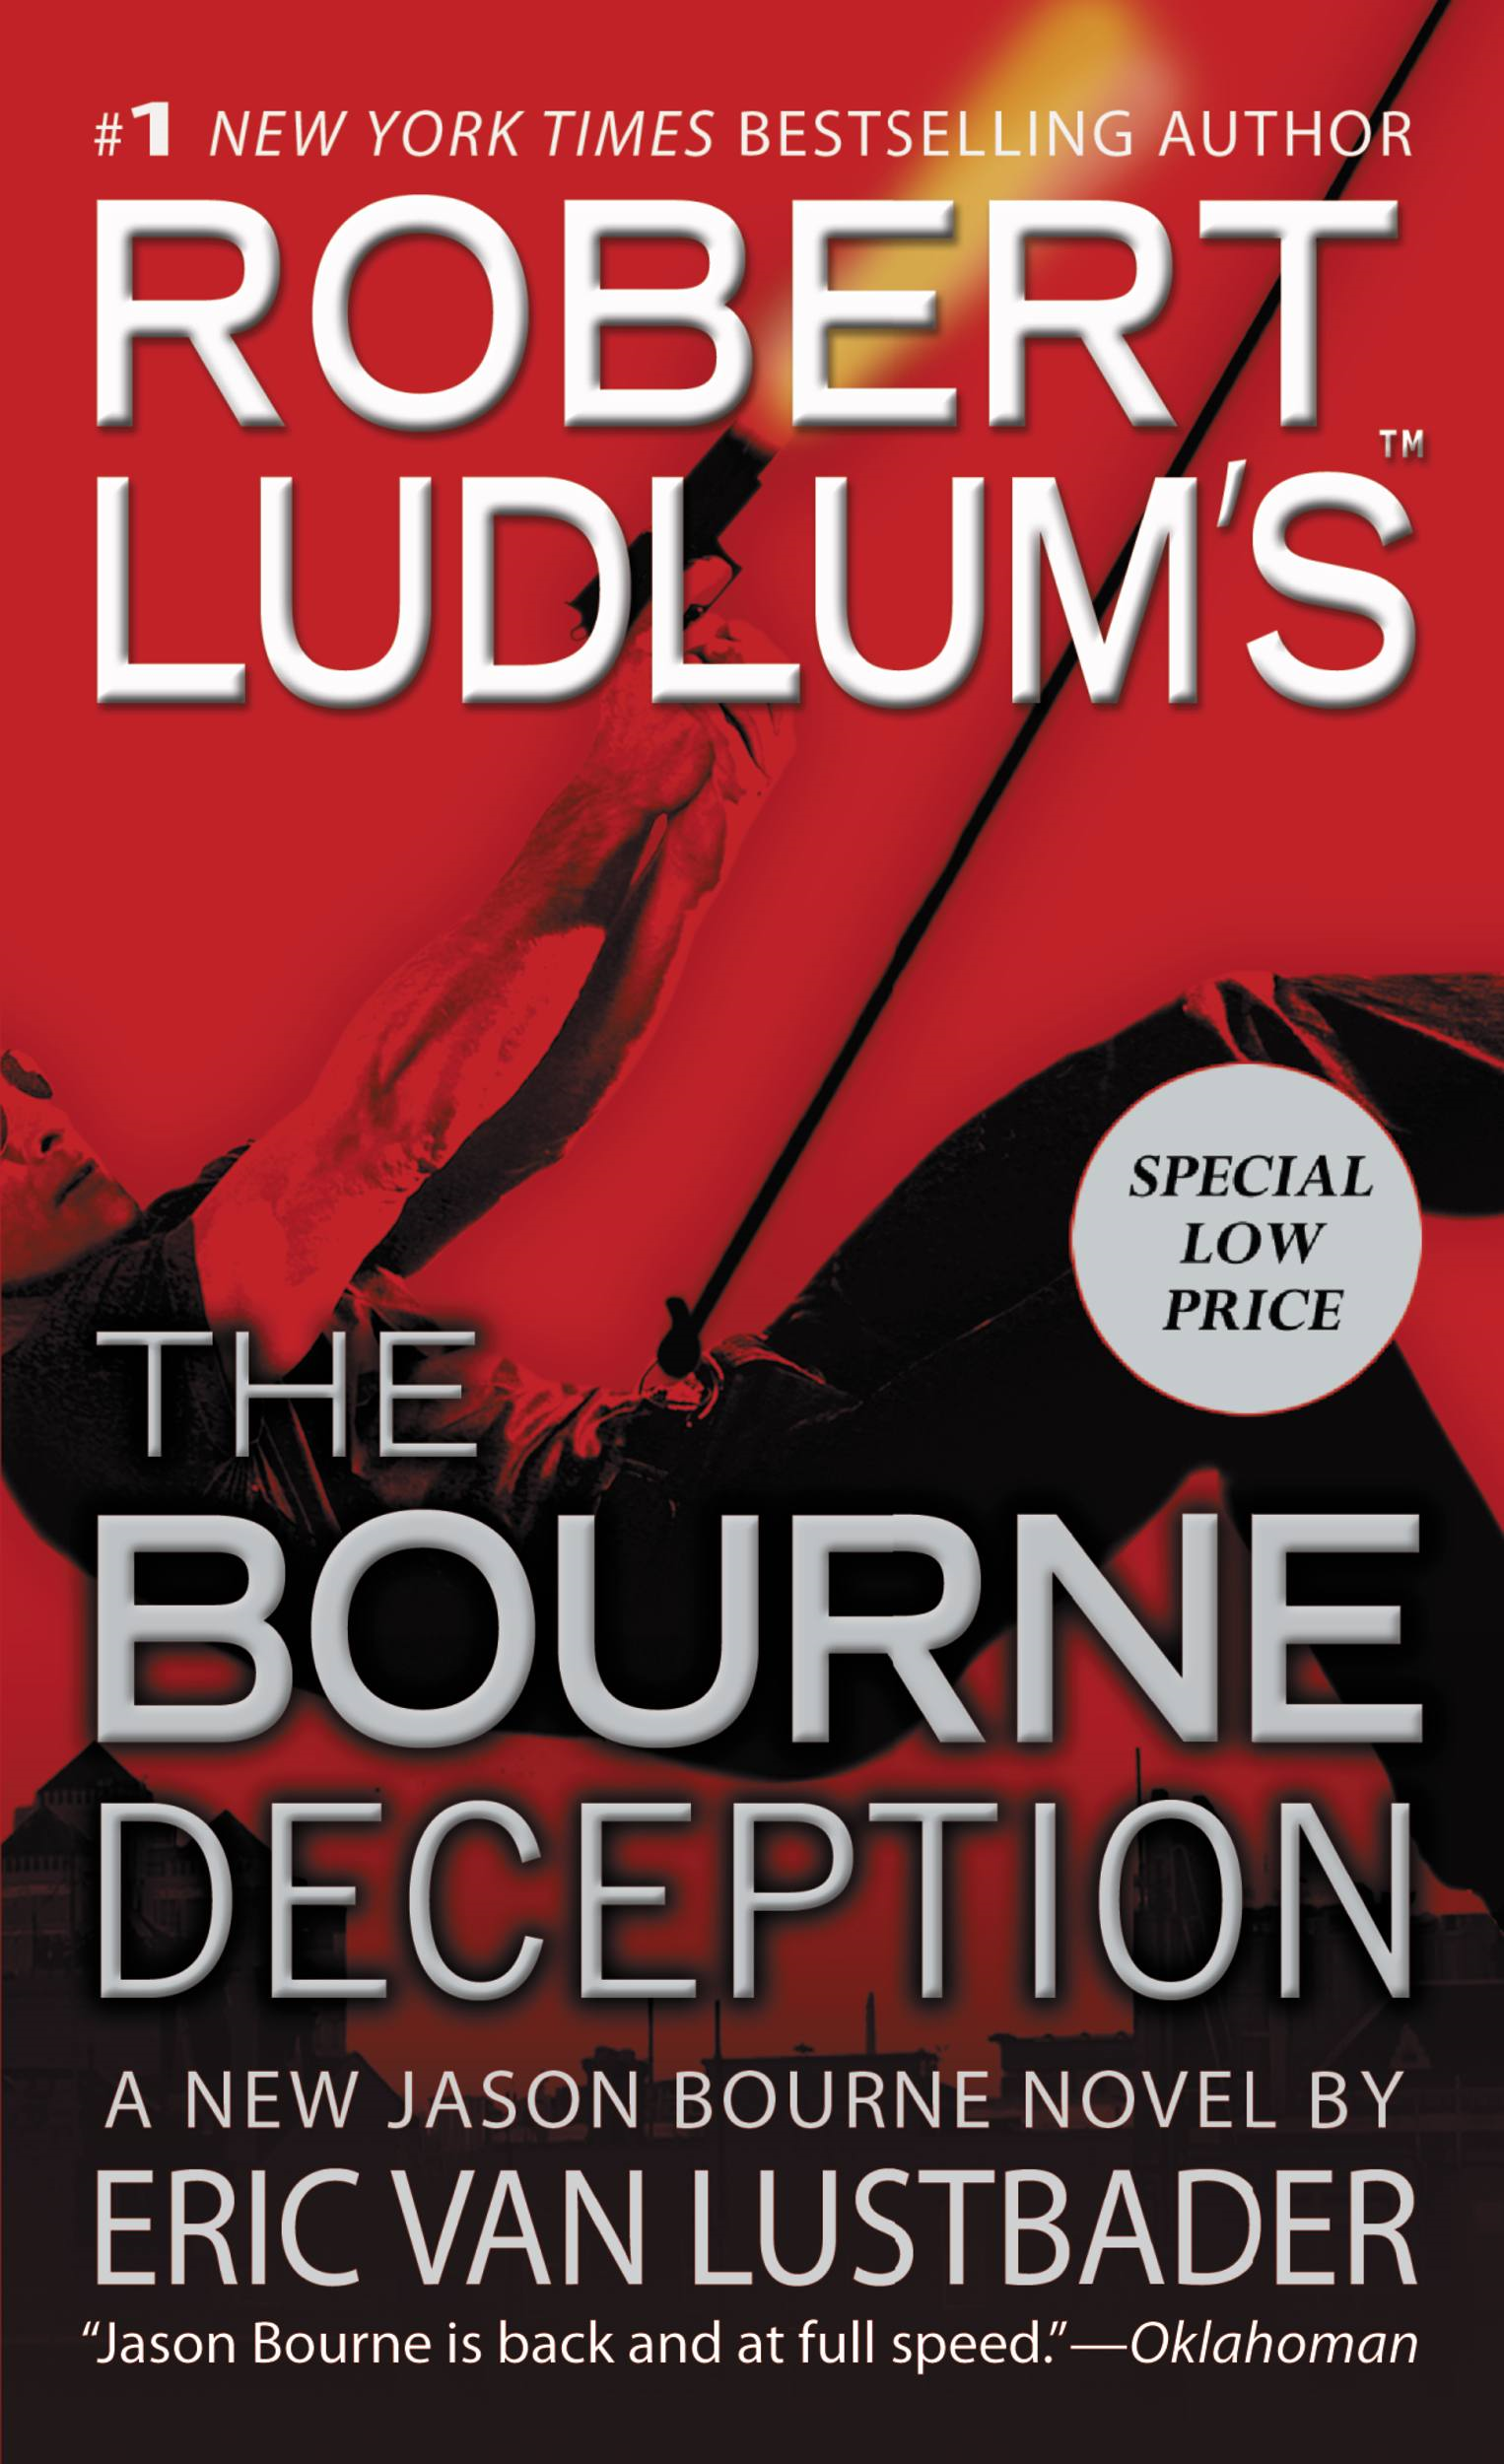 Robert Ludlum's (TM) The Bourne Deception By: Eric Van Lustbader,Robert Ludlum